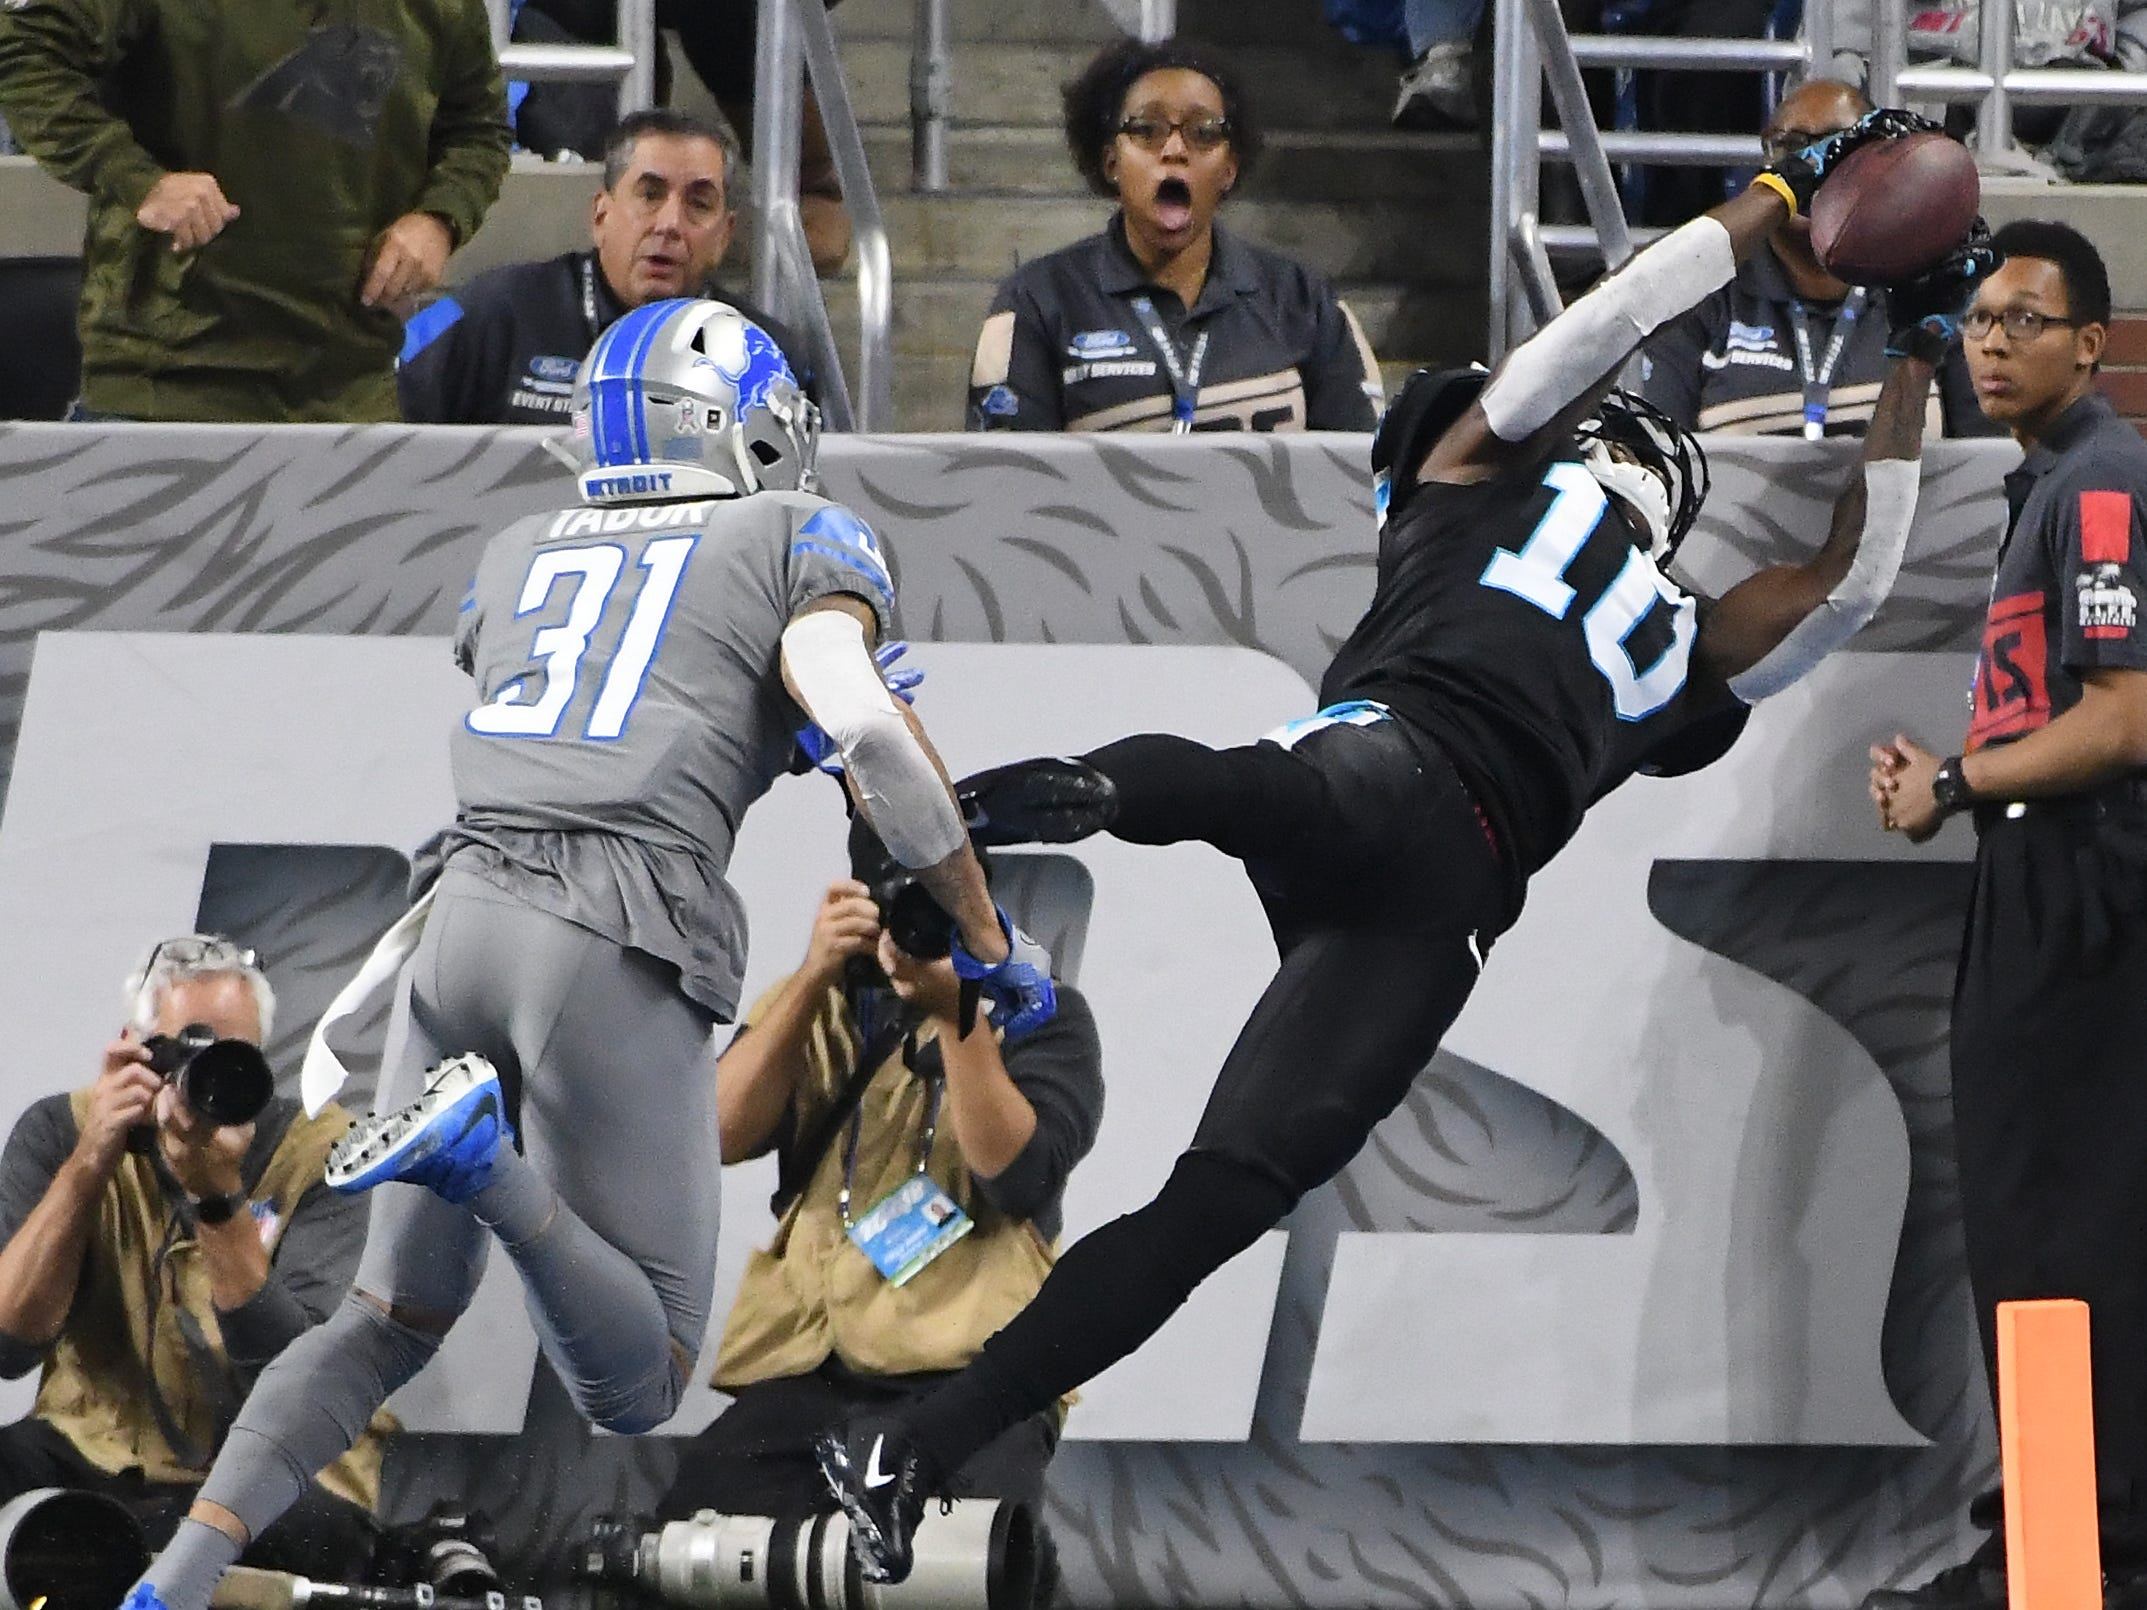 Panthers' Curtis Samuel brings down a touchdown reception in front of Lions' Teez Tabor to tie the game at 13 with a failed extra point attempt keeping the teams tied in the fourth quarter.